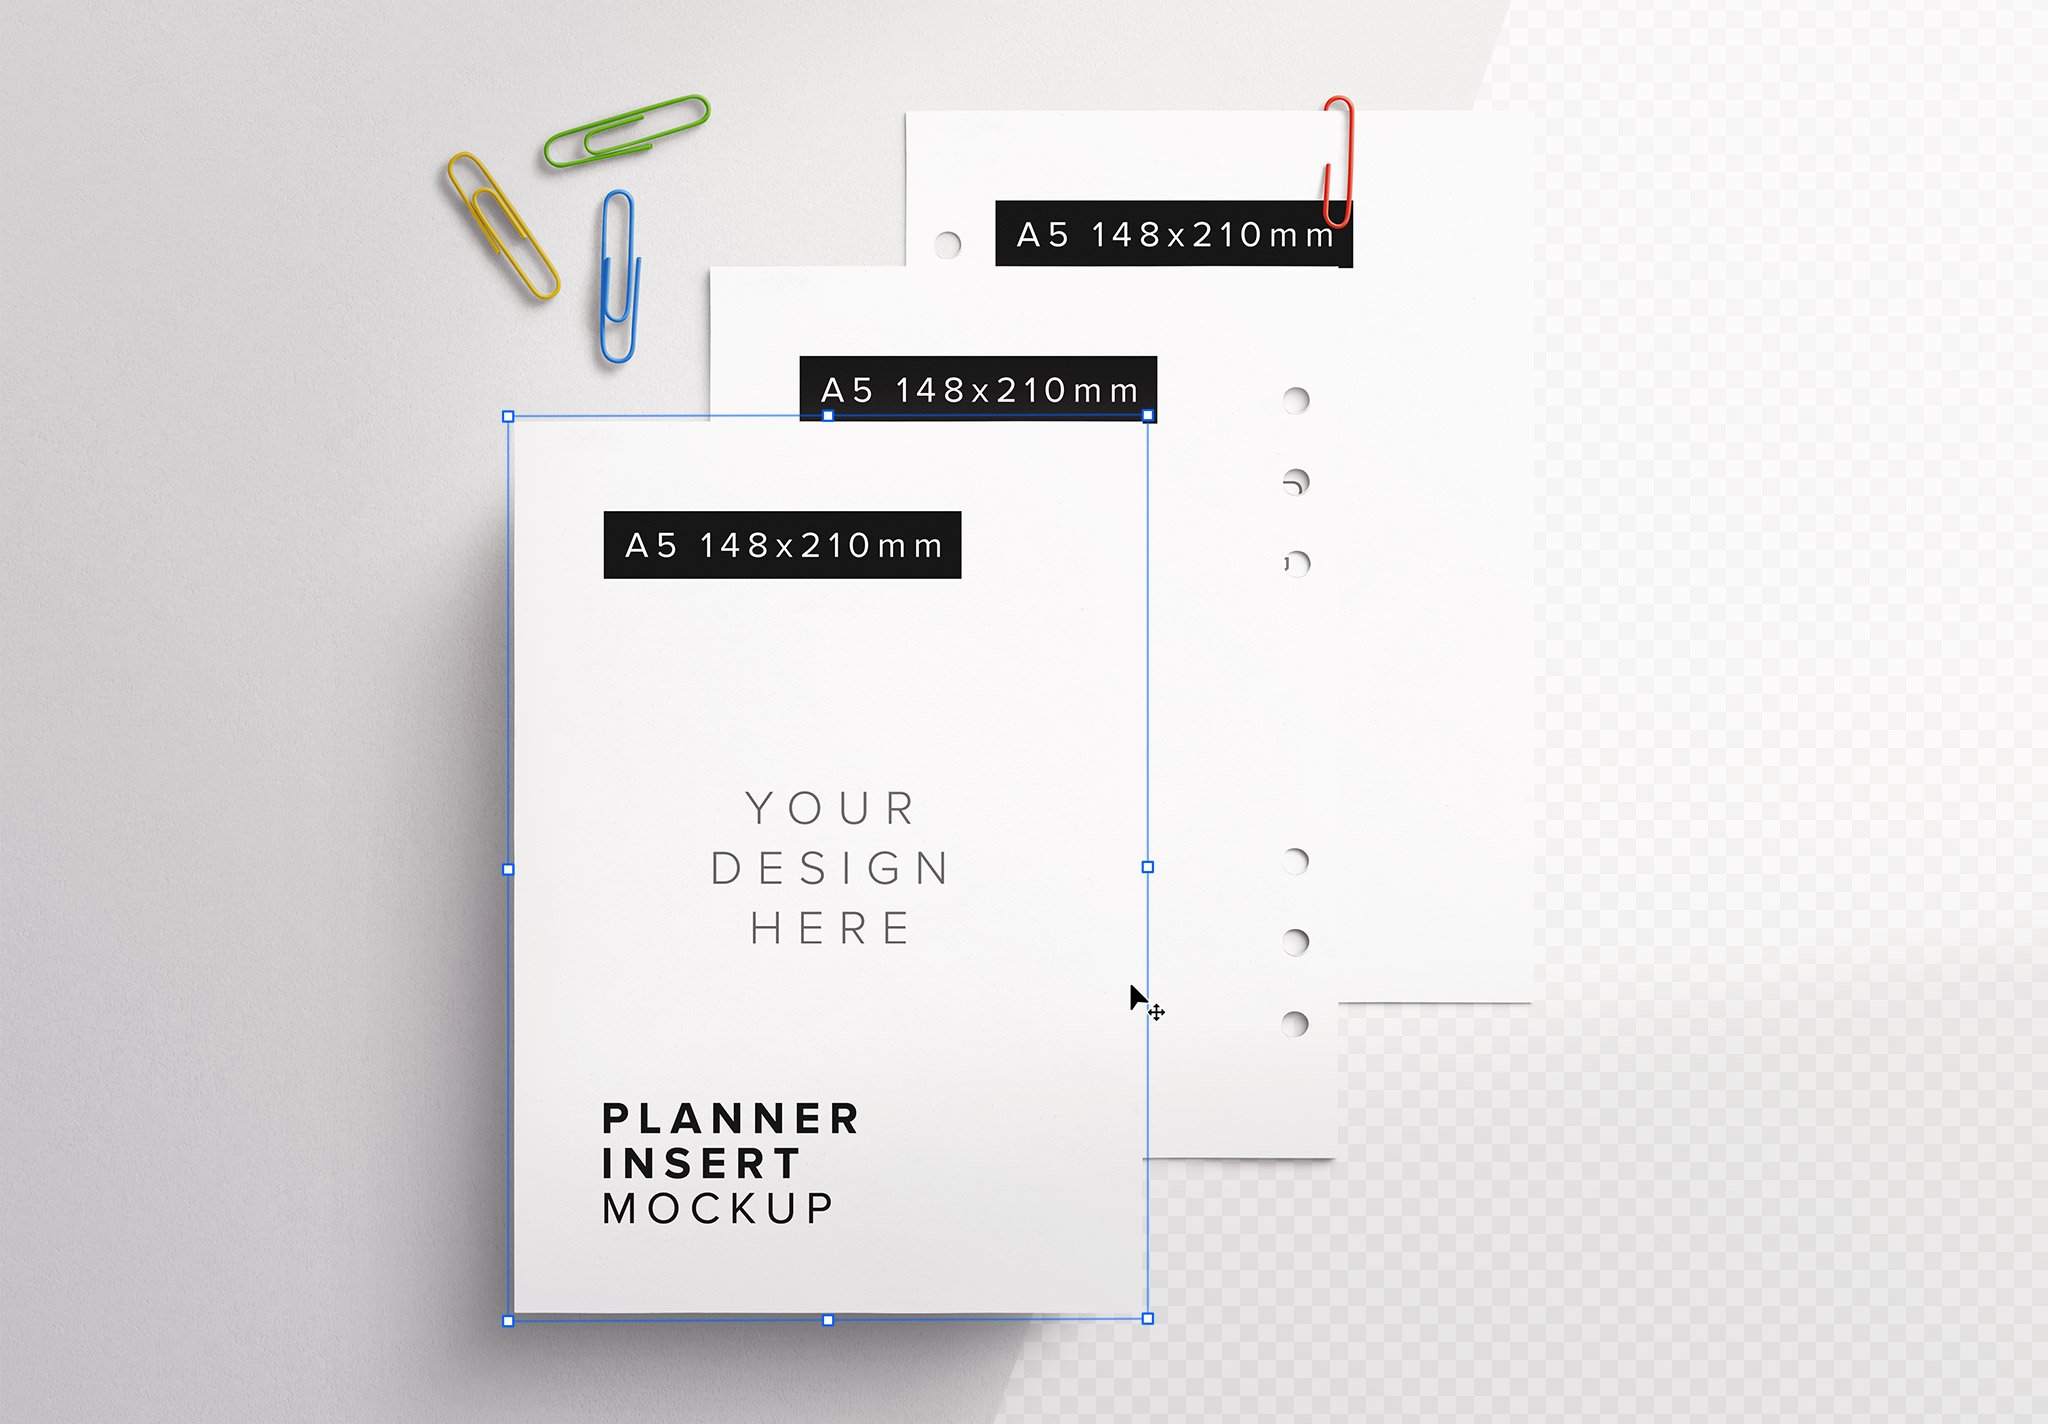 Planner Inserts A5 Size Mockup Thumbnail